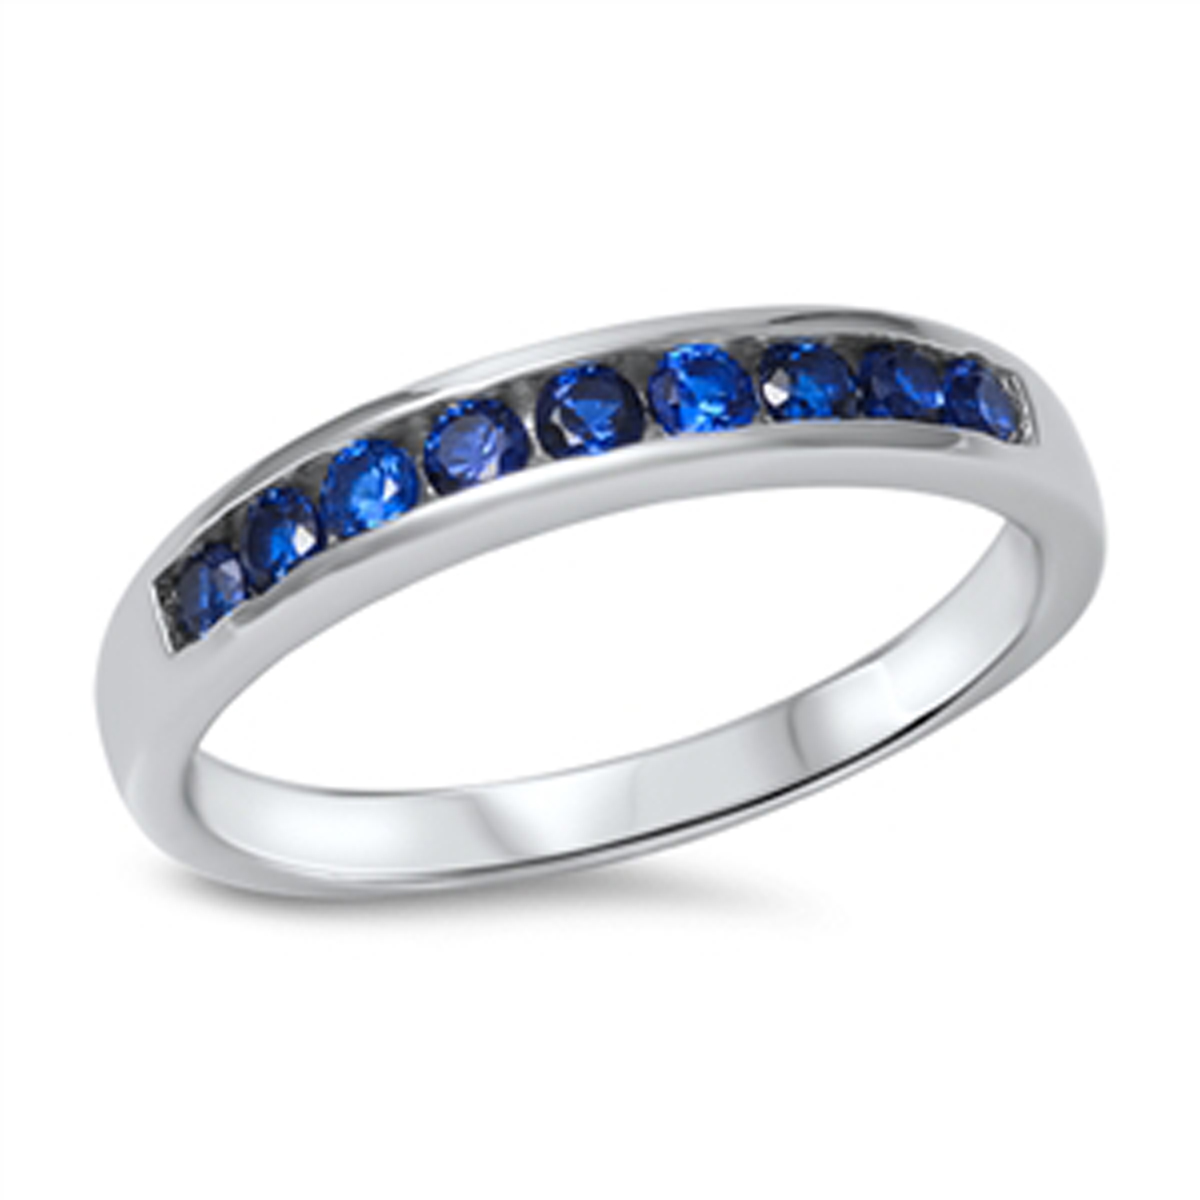 Sterling Silver Elegant Women's Flawless Blue Cubic Zirconia Wedding Ring (Sizes 3-12) (Ring Size 3)